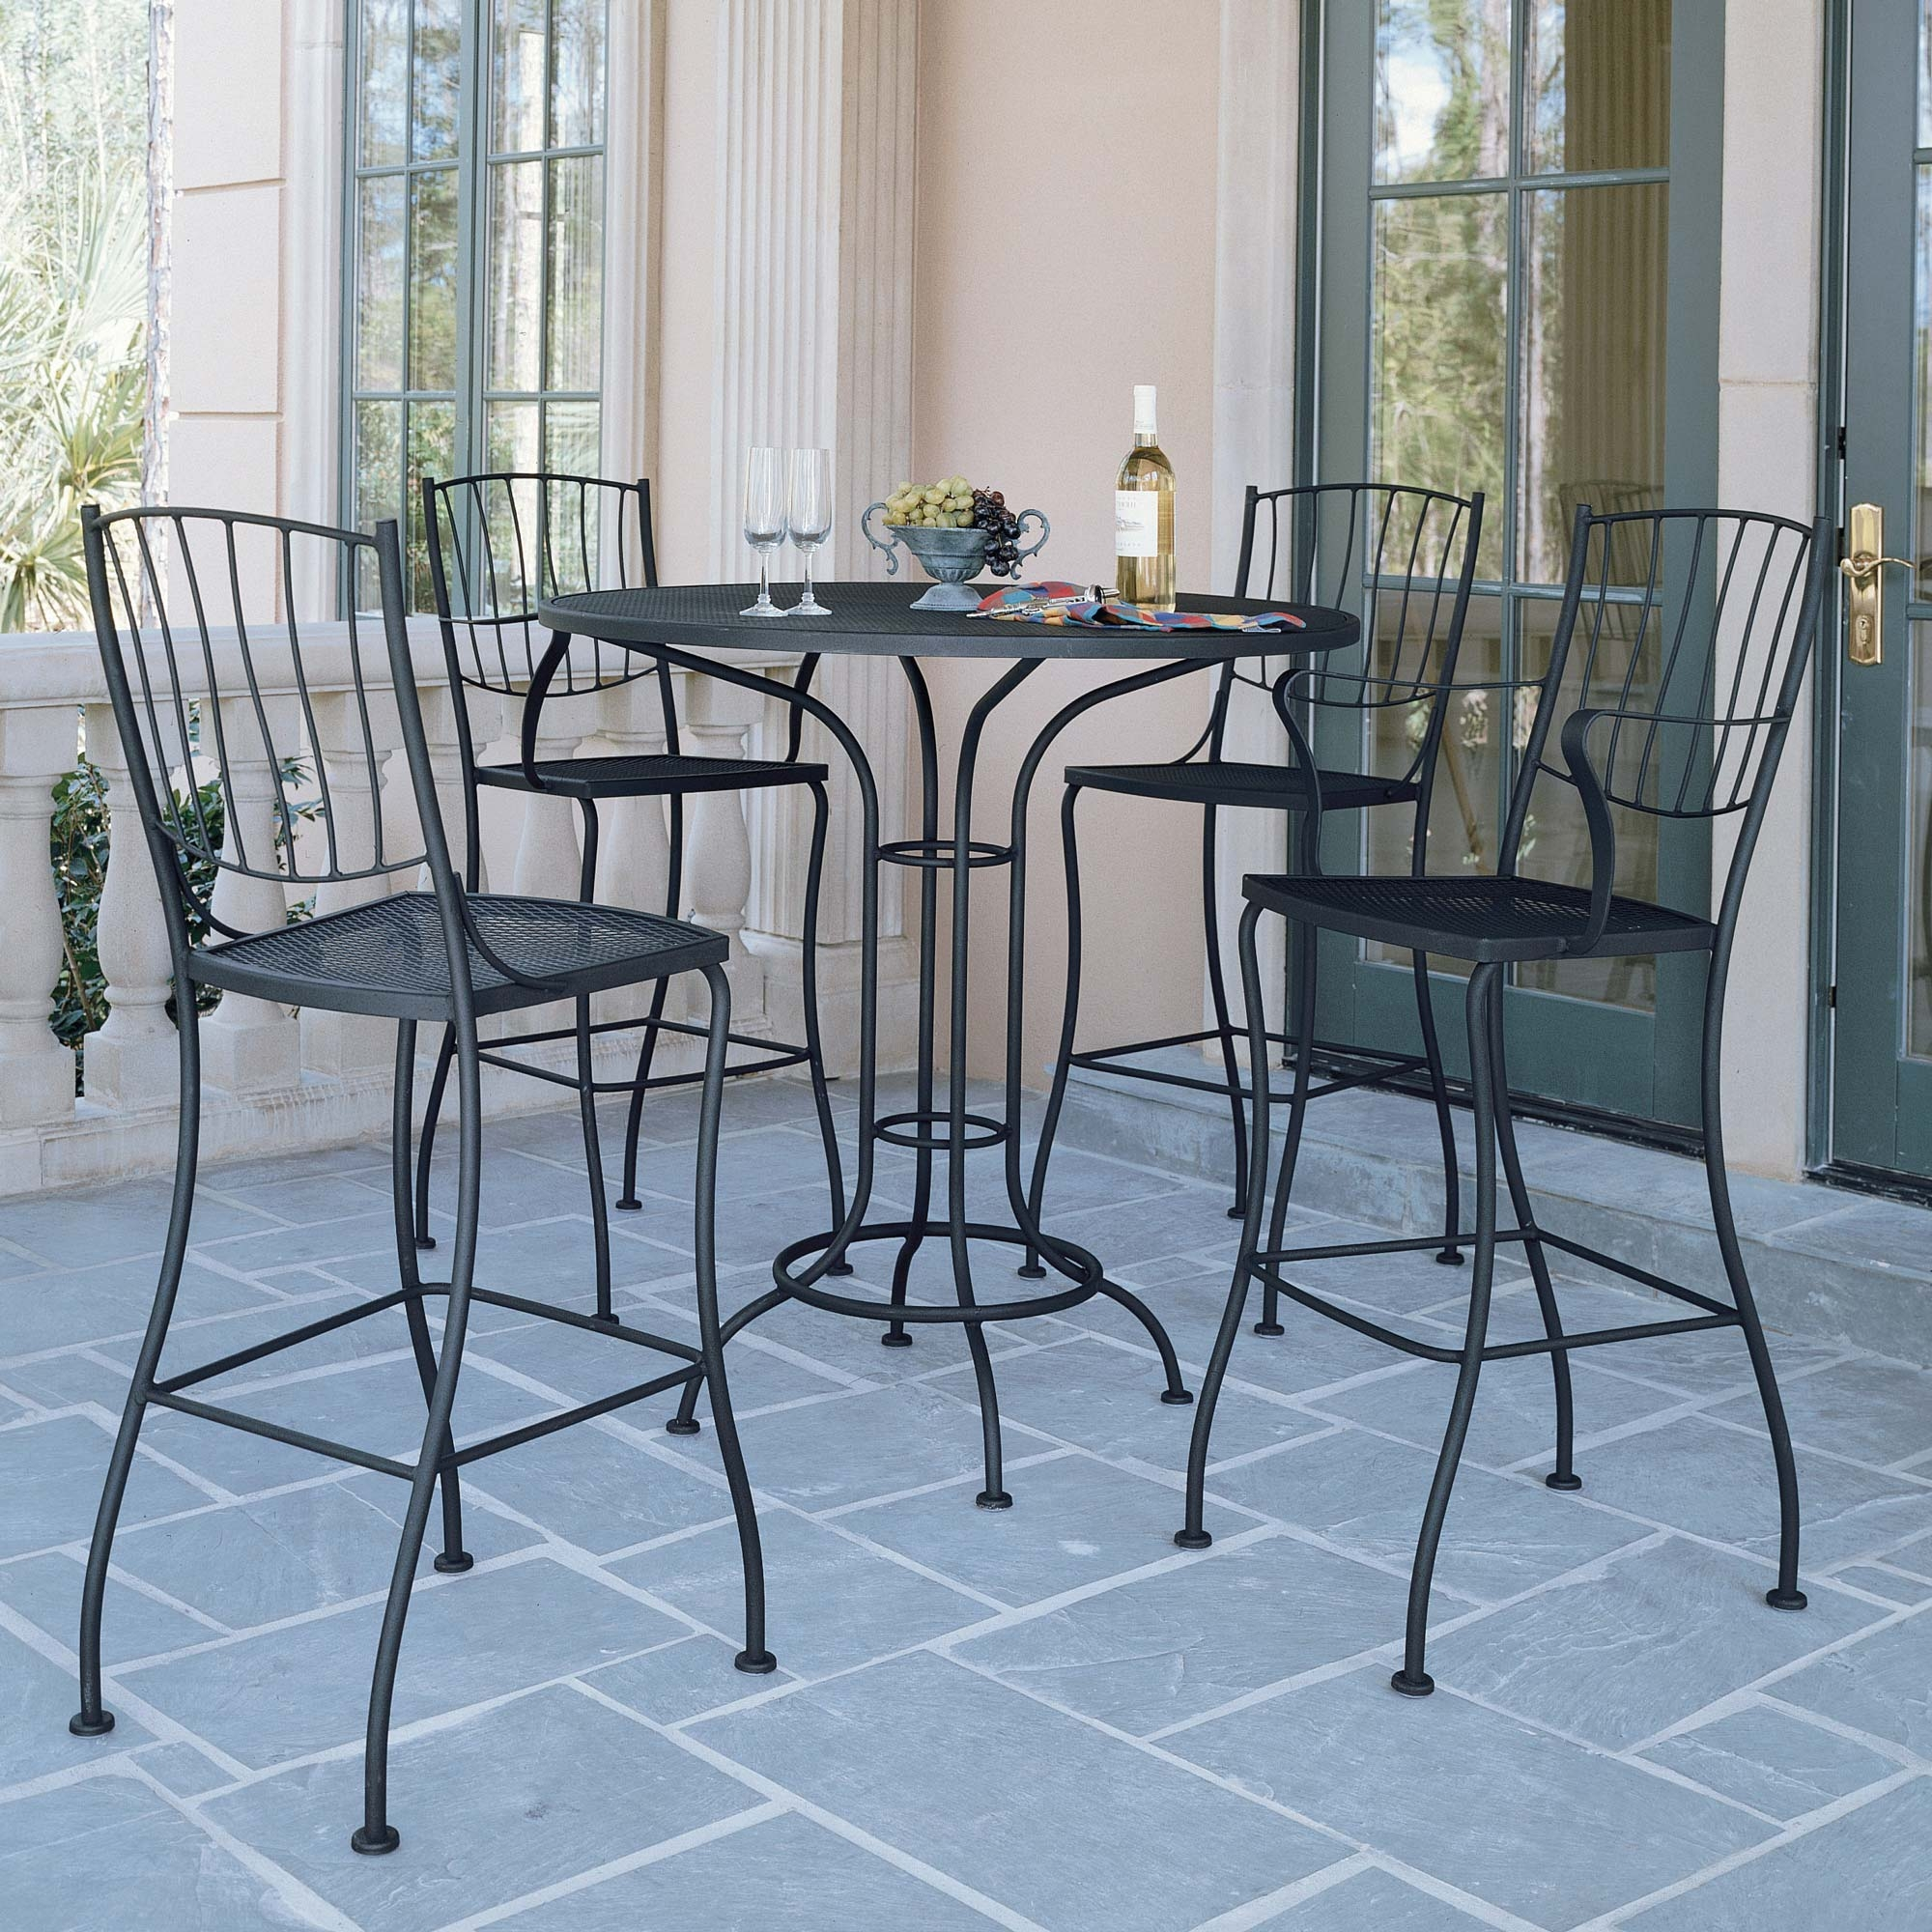 buy the 38 round bar height table for